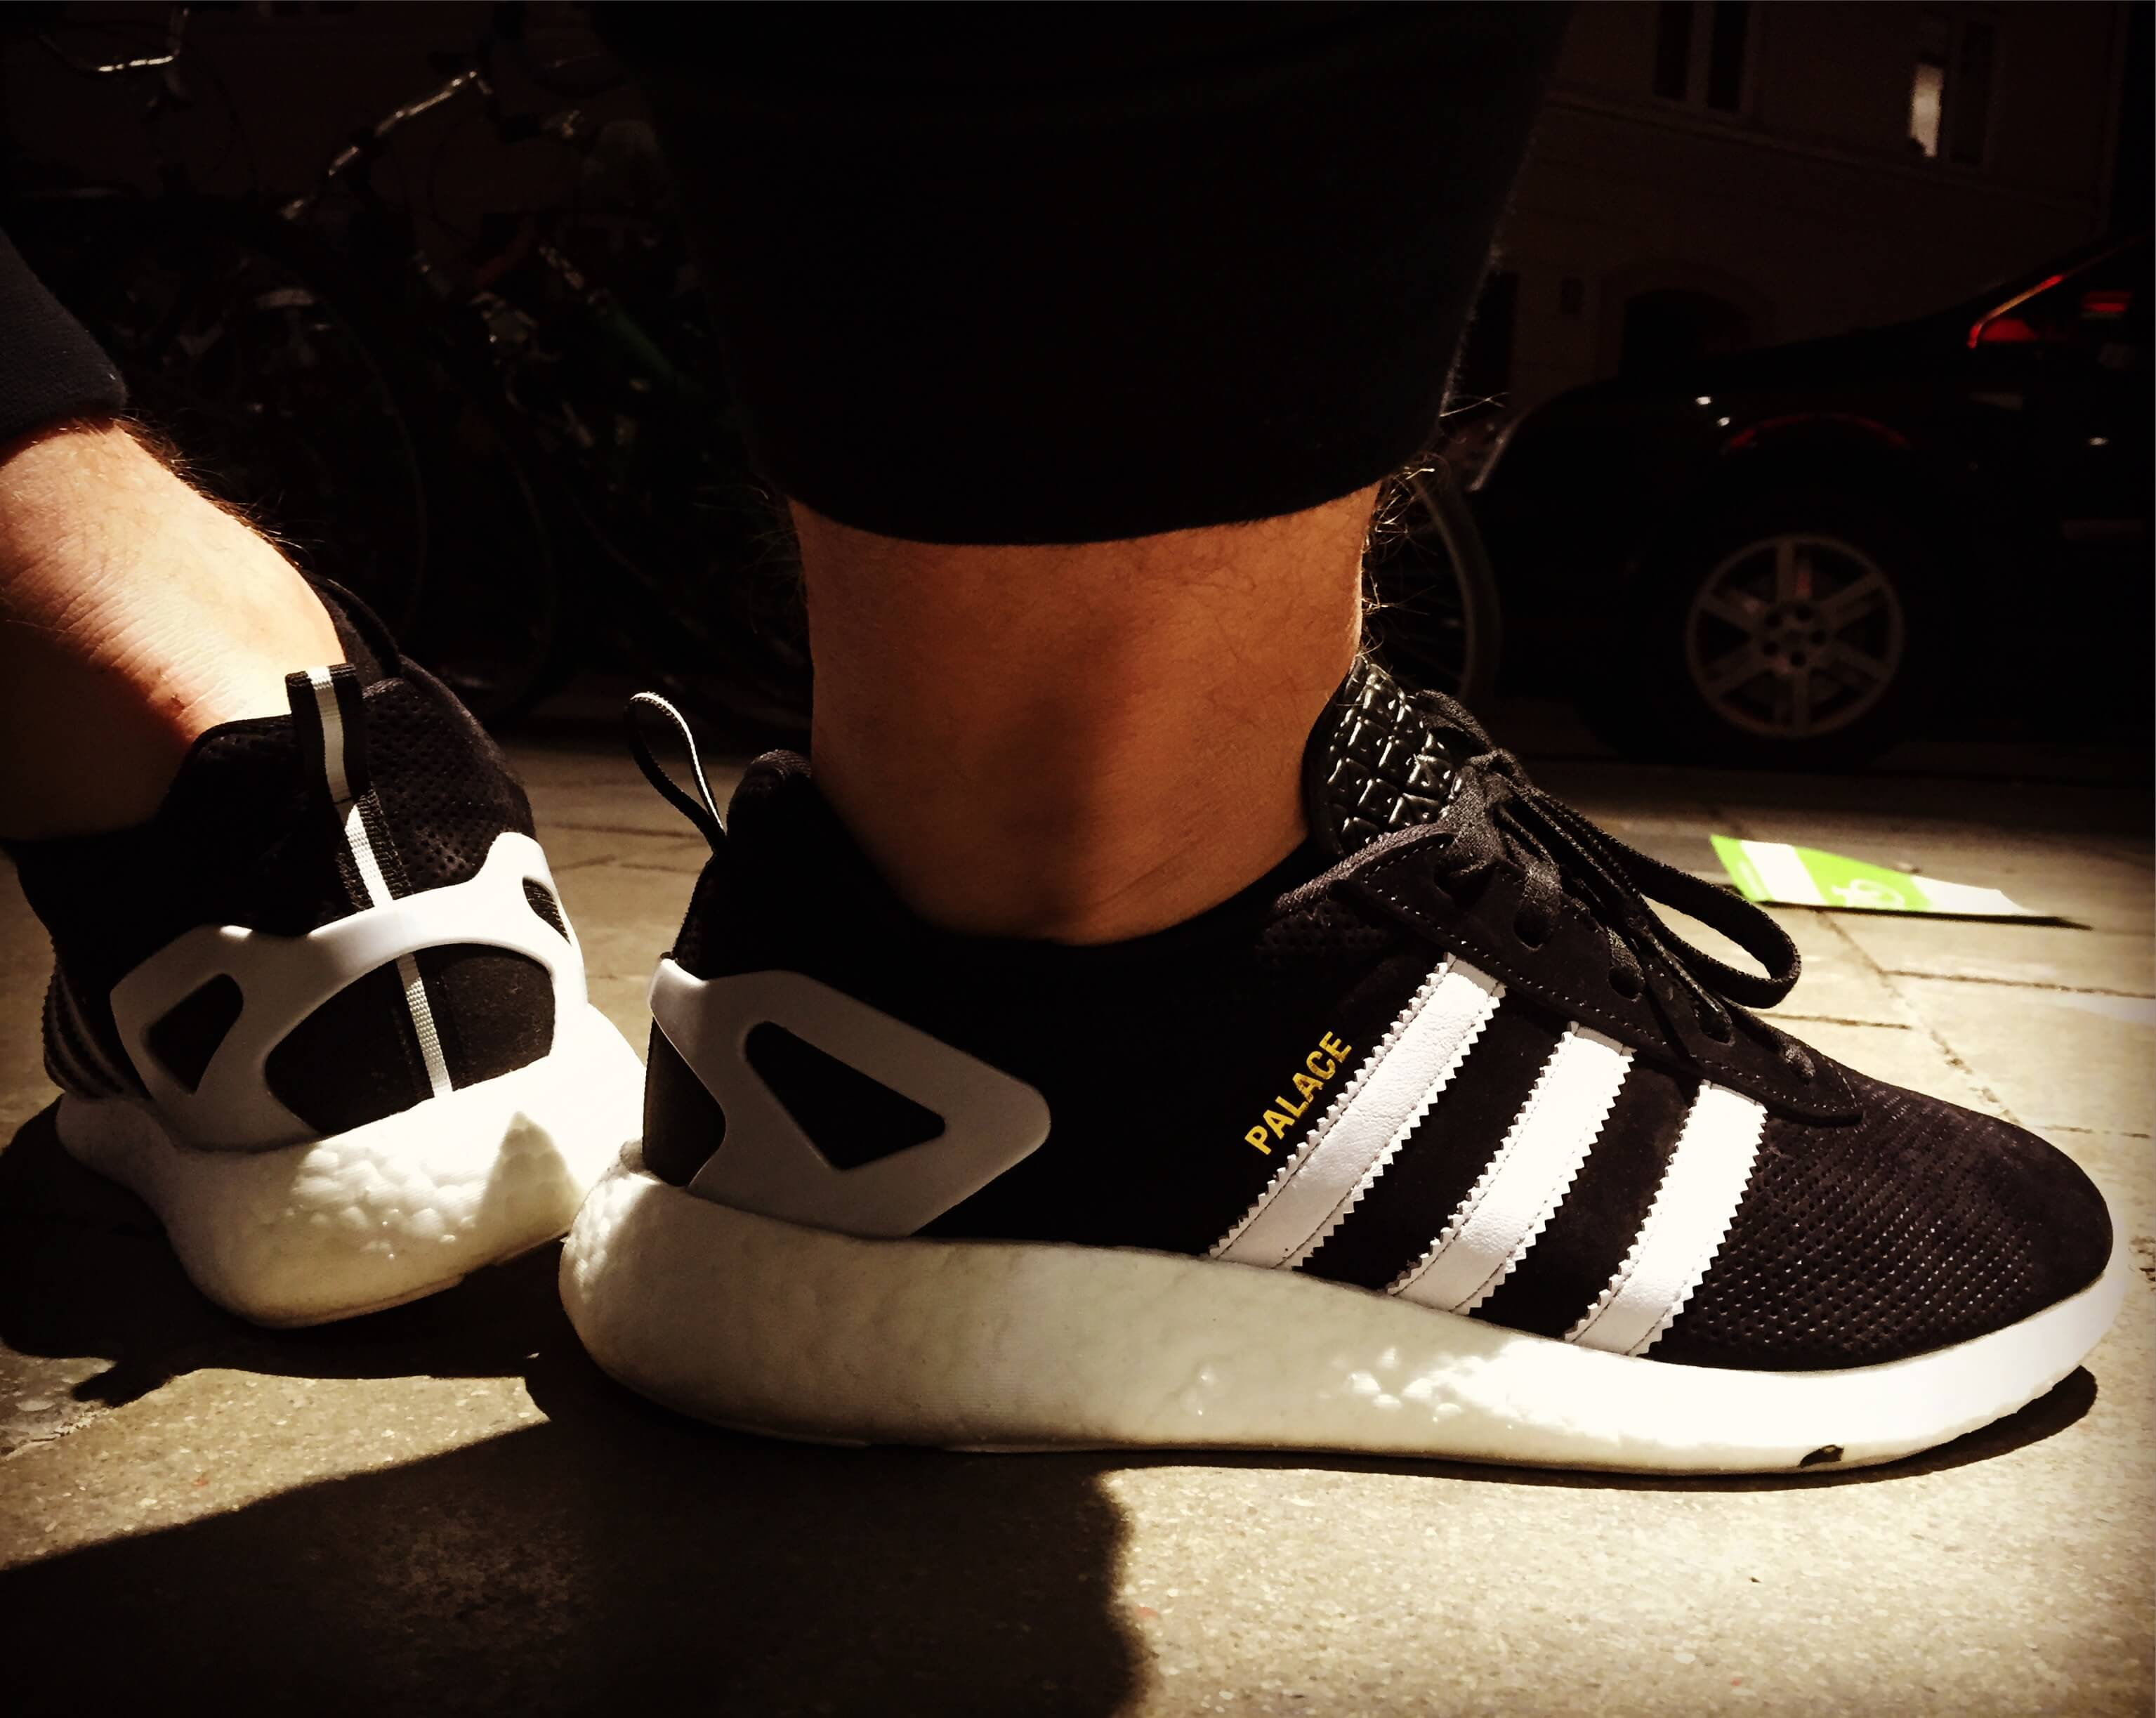 Adidas-Palace-Pro-Boost-Rear-View-Benstah-Onfeet